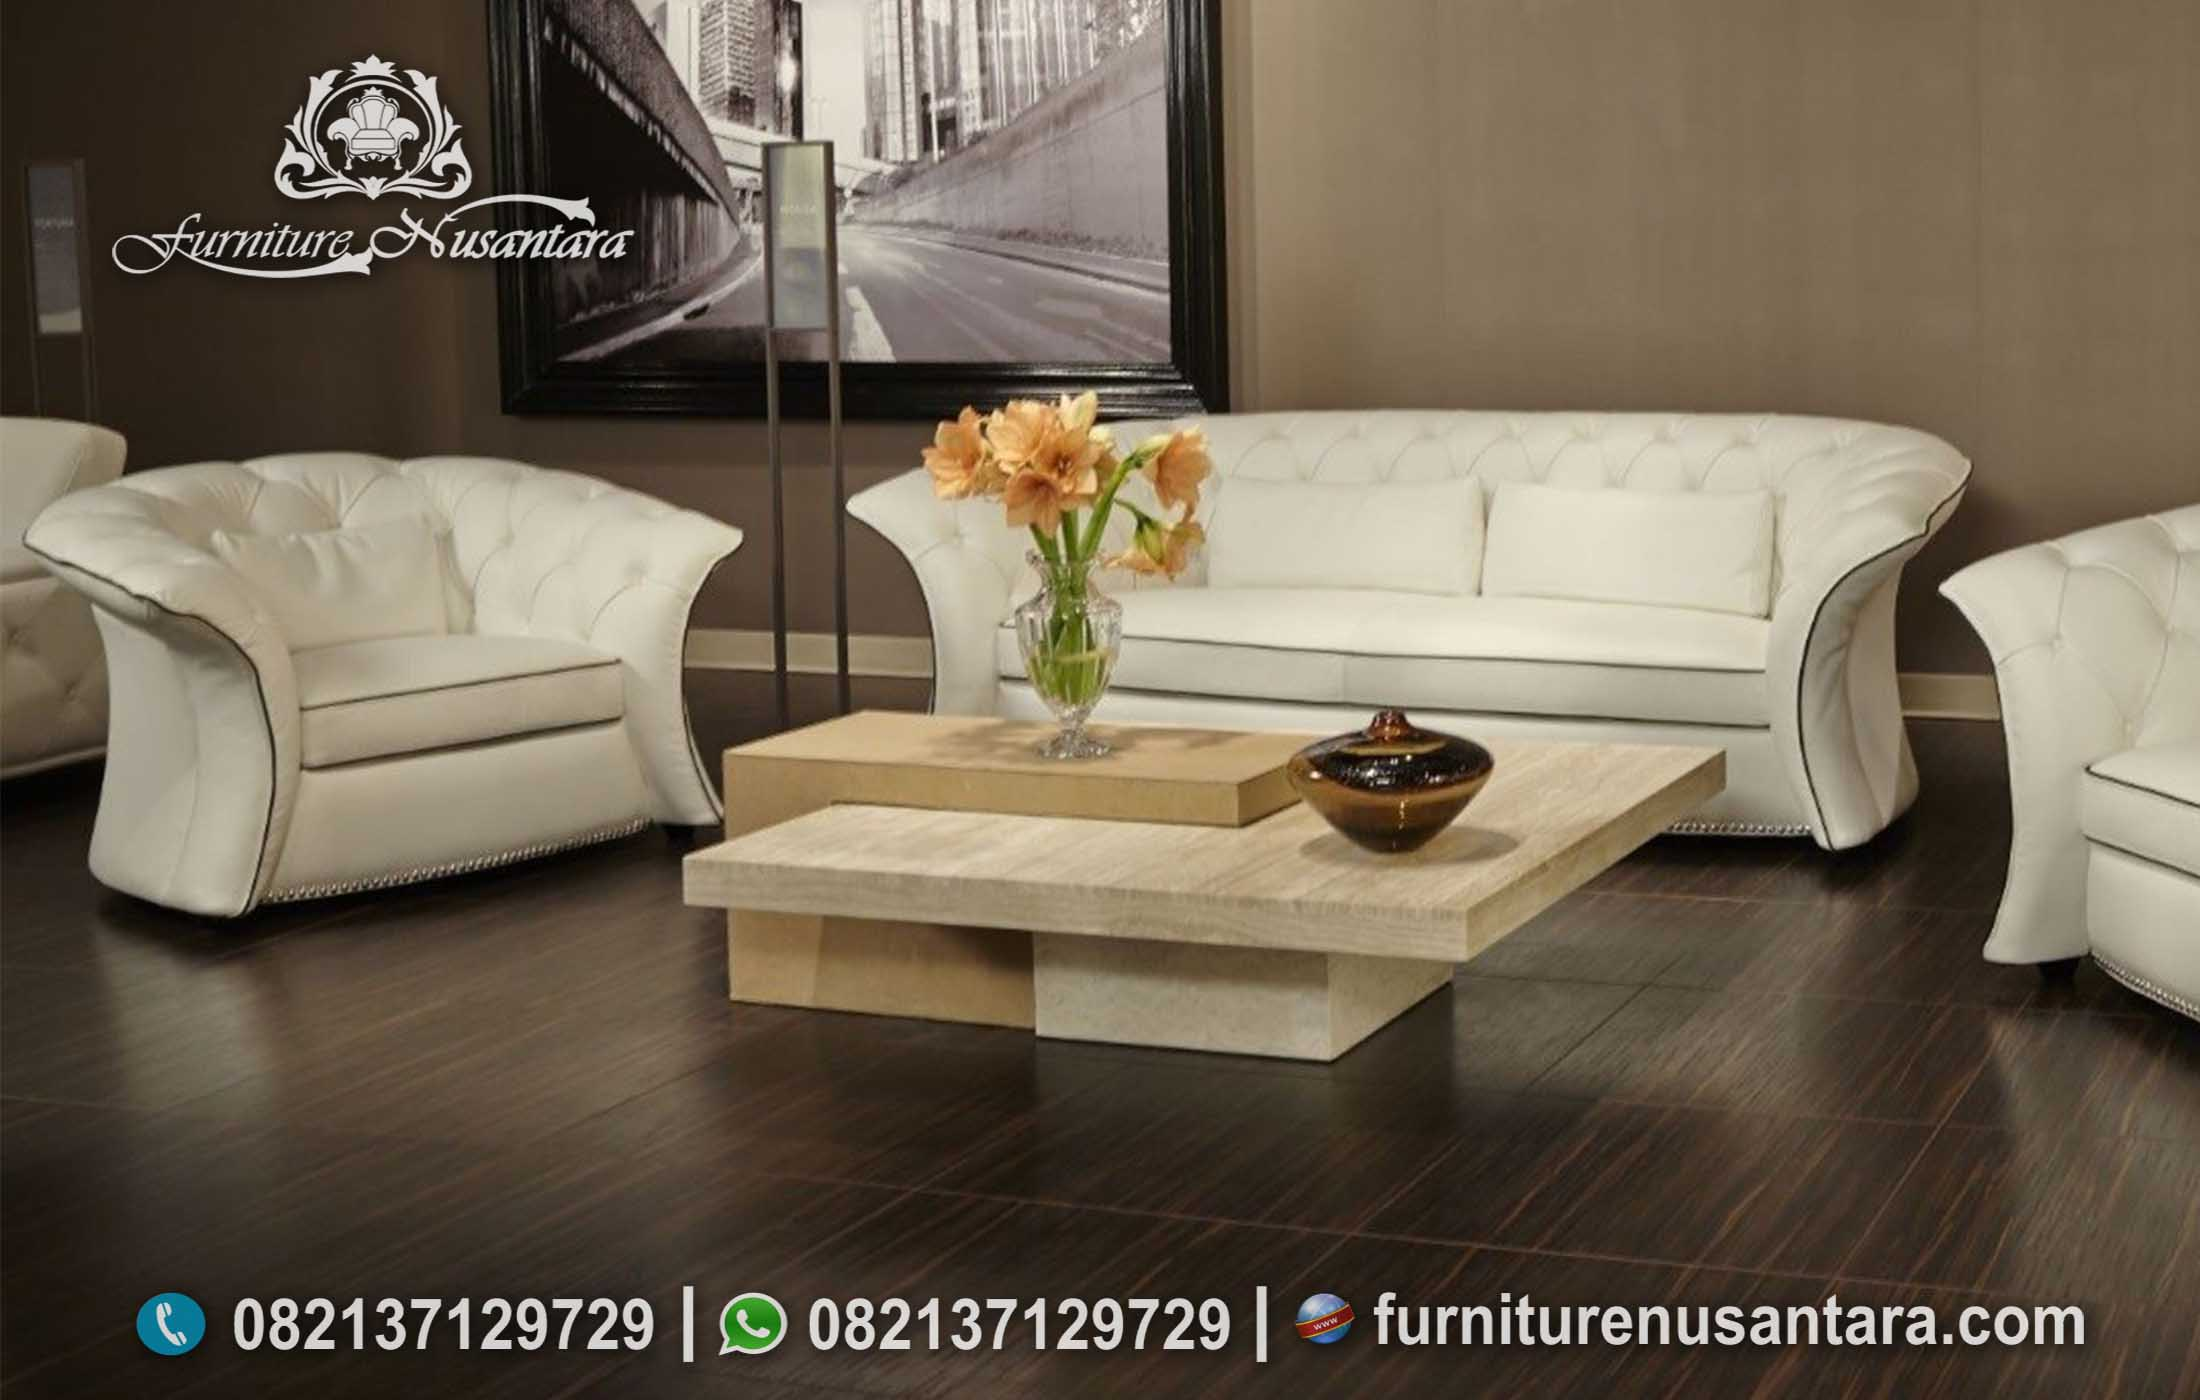 Sofa Tamu Minimalis Simple Warna Putih ST-93, Furniture Nusantara